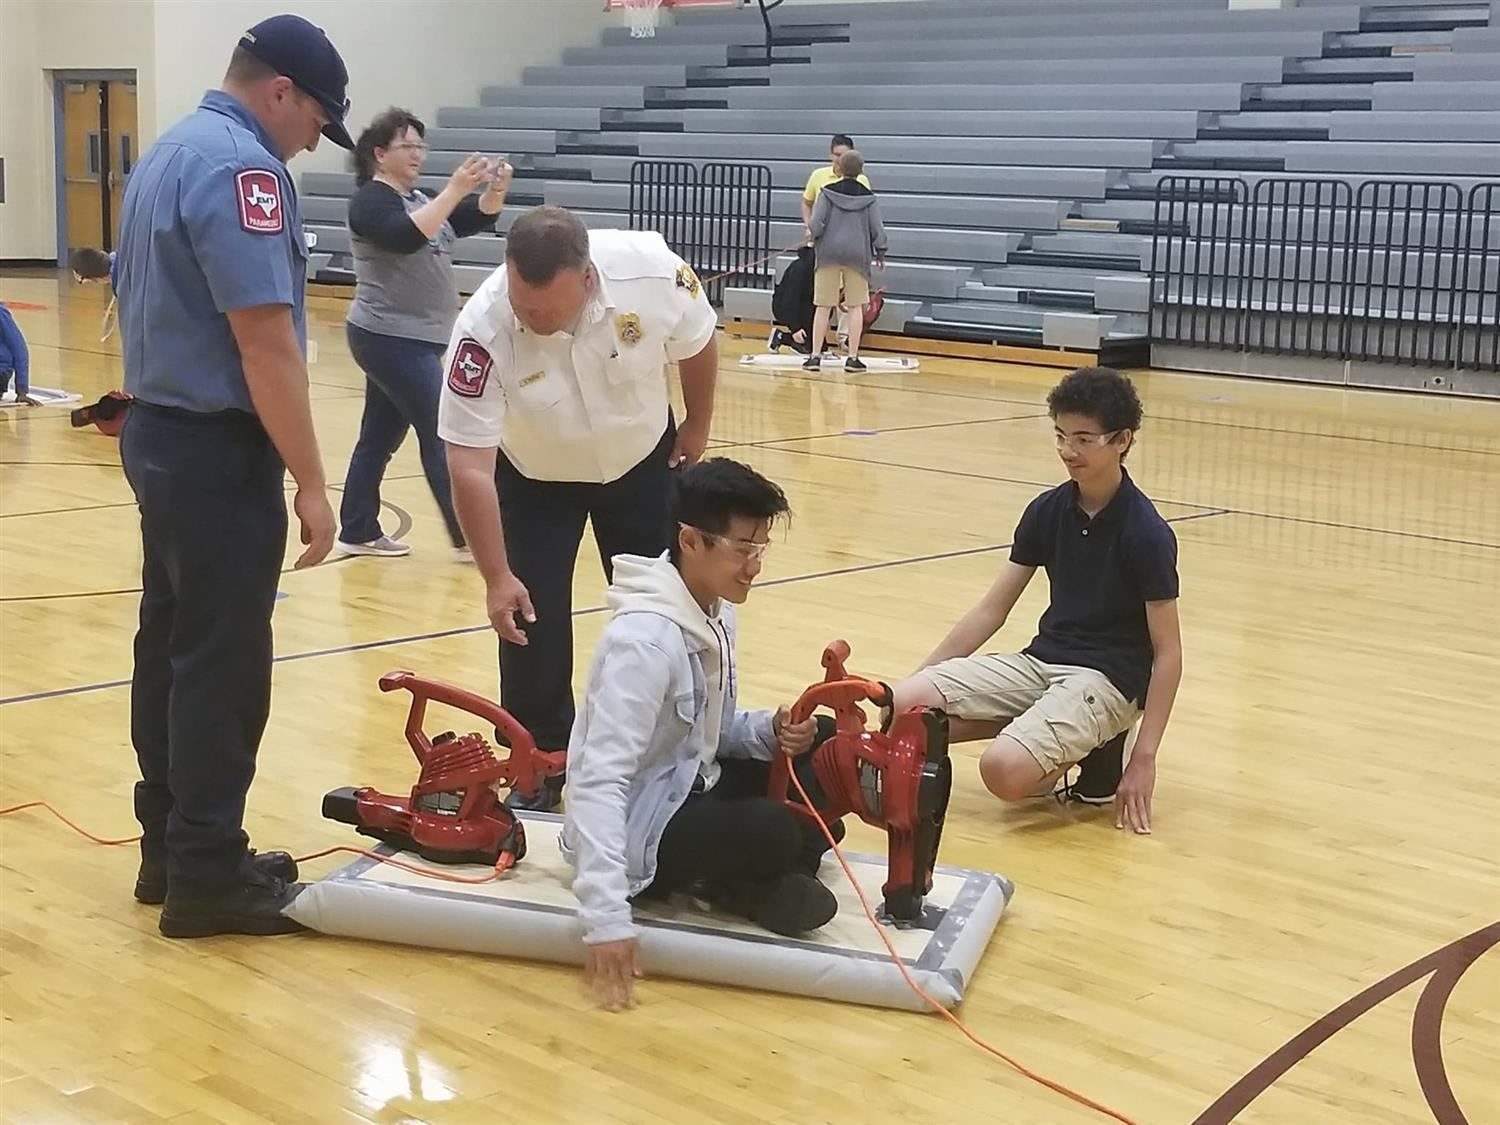 Fire department looking on as classmates test their hovercrafts